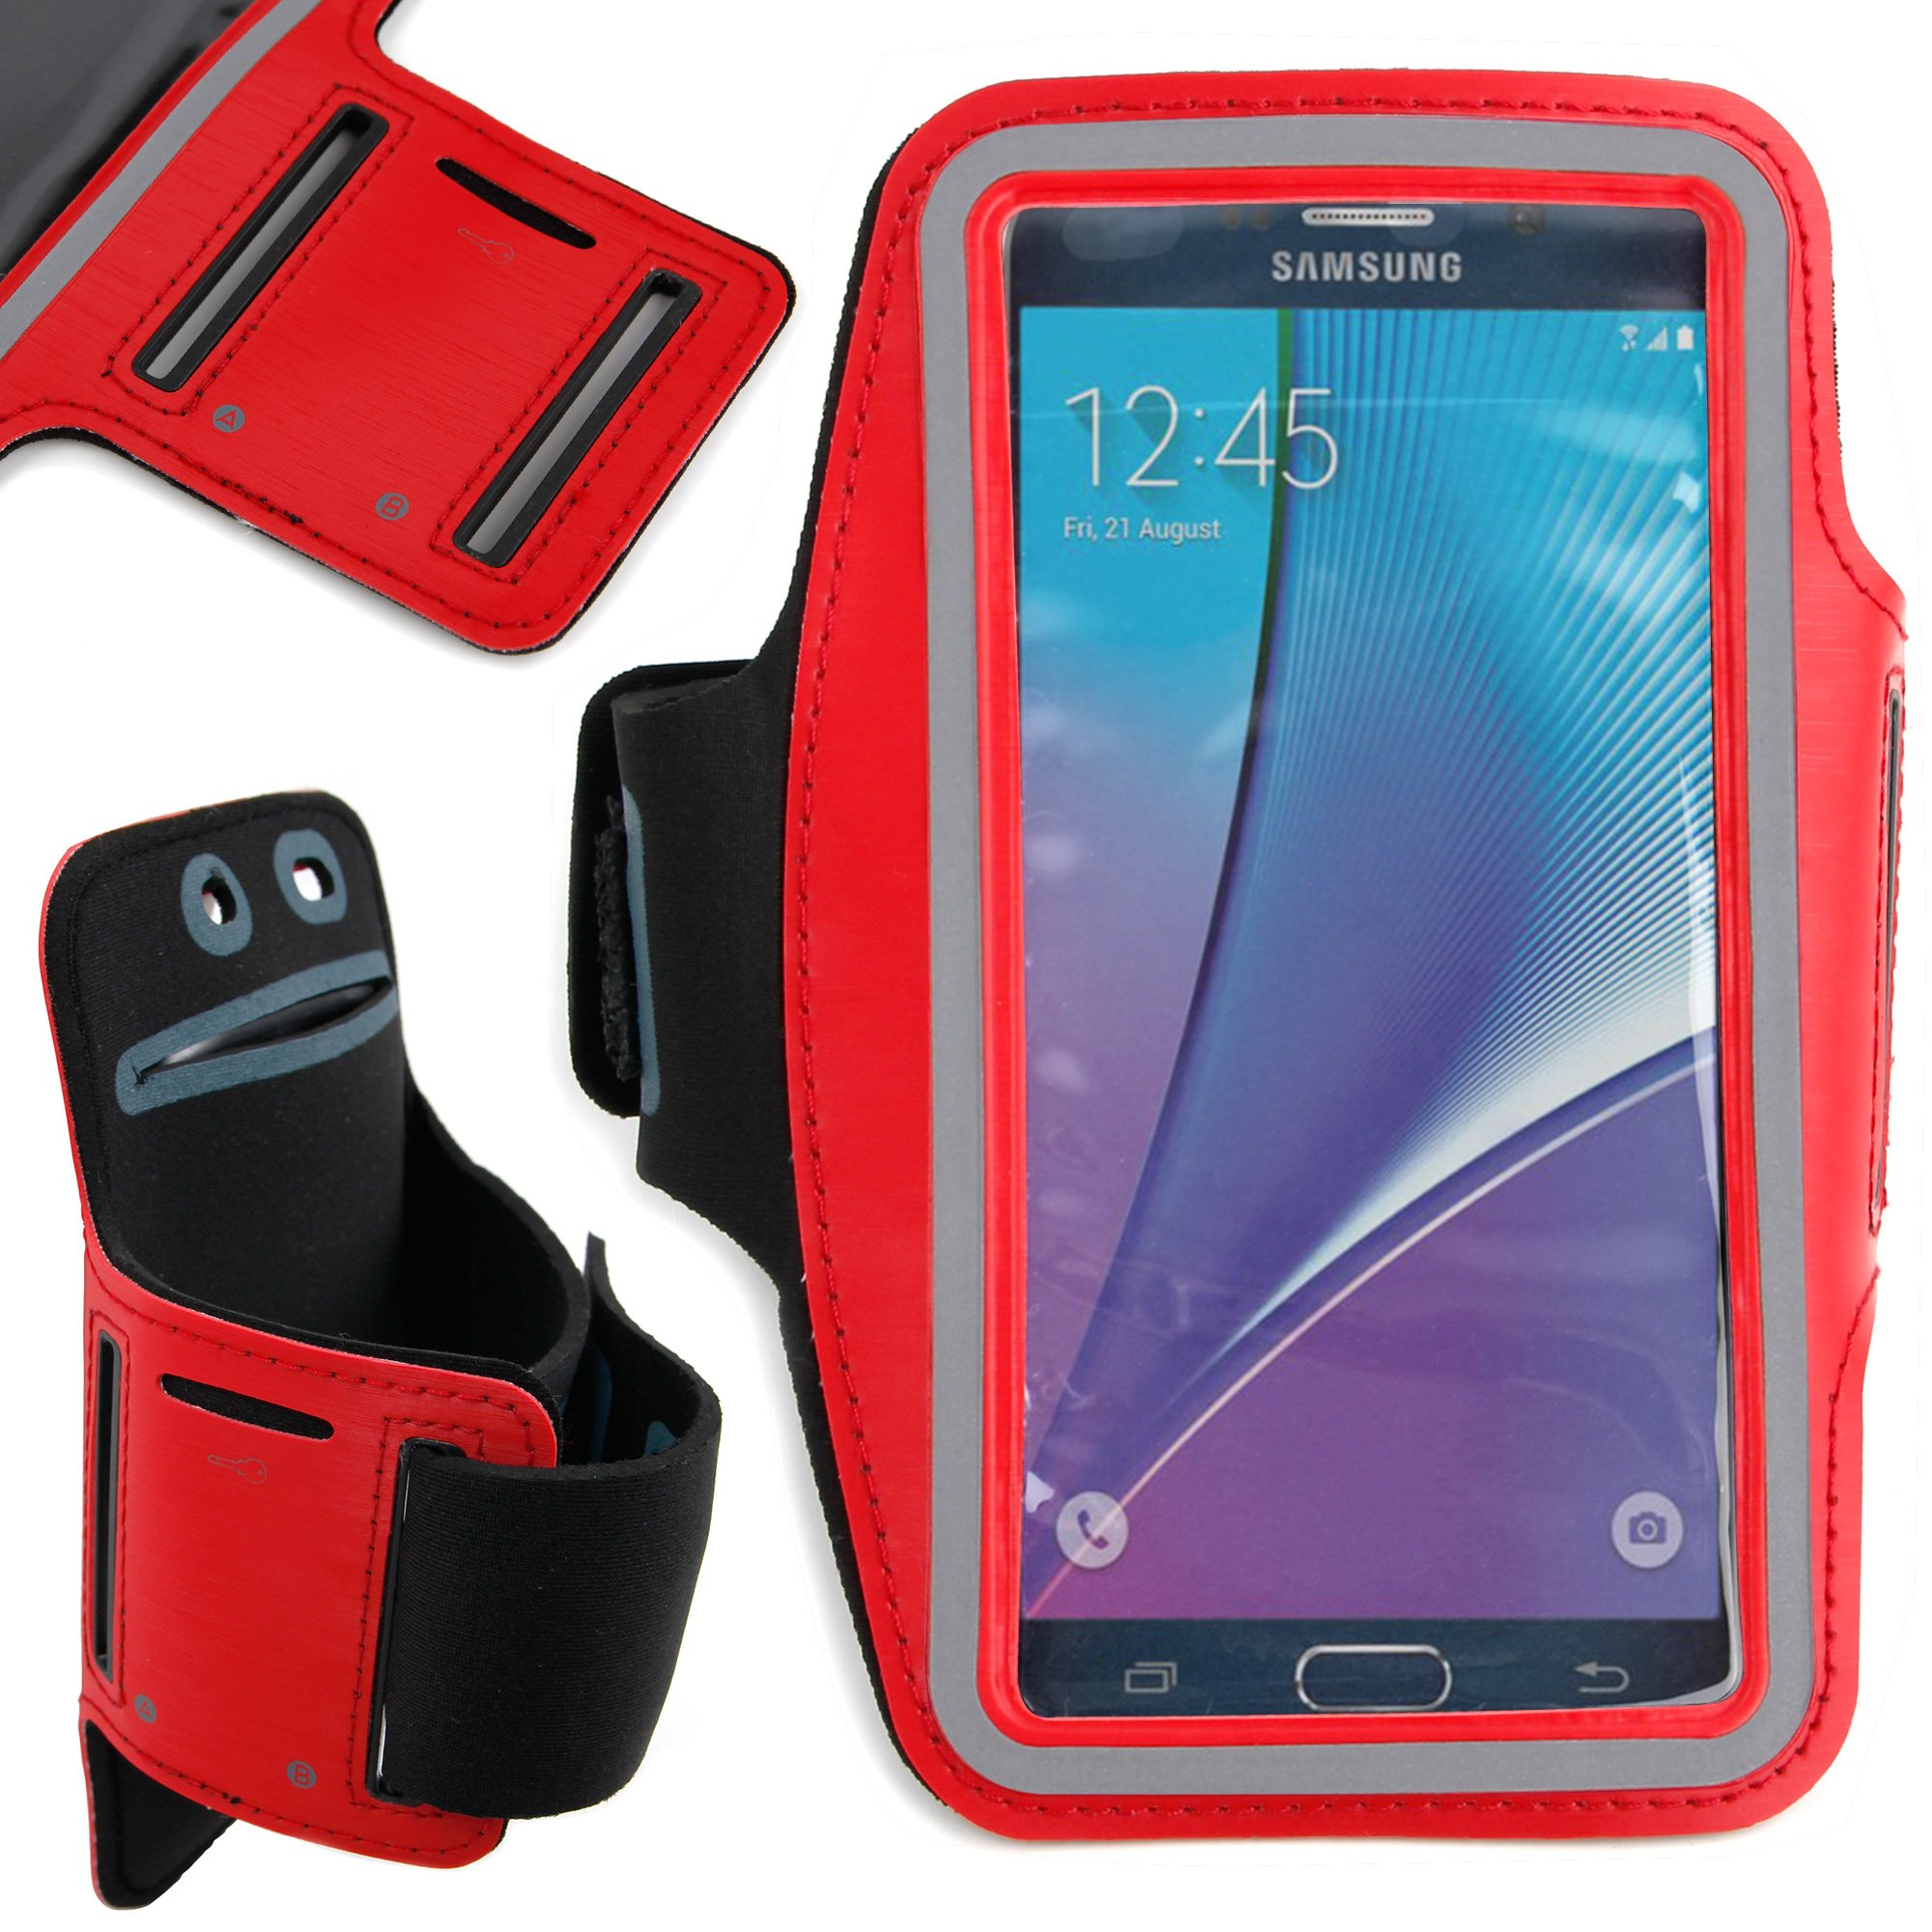 DURAGADGET Premium Quality Unisex Sports Armband in Red - Compatible NEW Samsung Galaxy Note5 (Android OS v.5.1.1 Lollipop, 5.7'' Touchscreen, Quad-Core 1.5 Ghz)